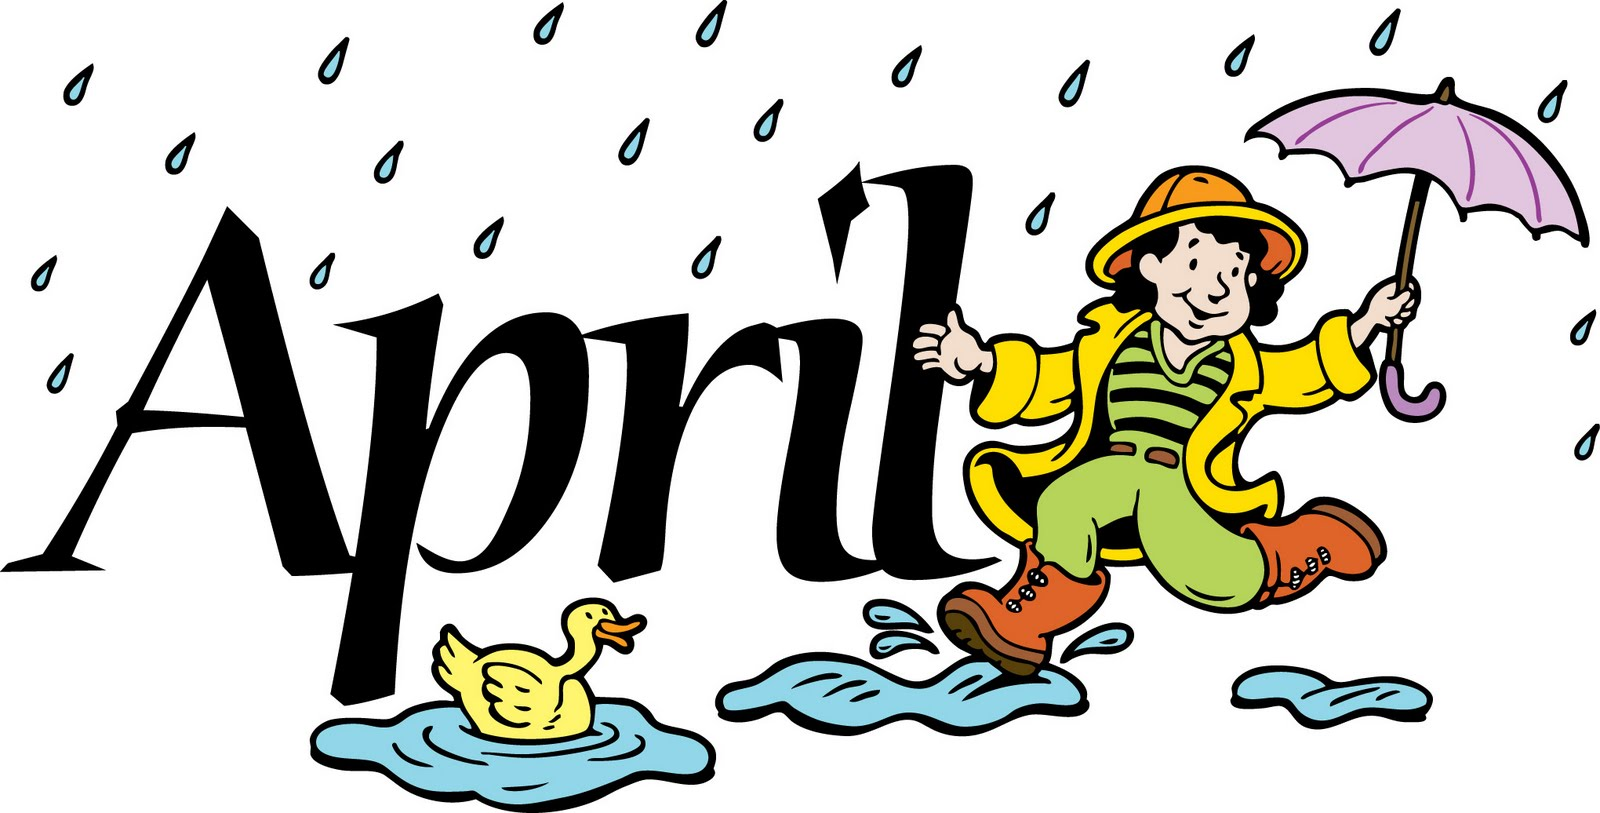 April free clipart clip download Free April Cliparts, Download Free Clip Art, Free Clip Art on ... clip download